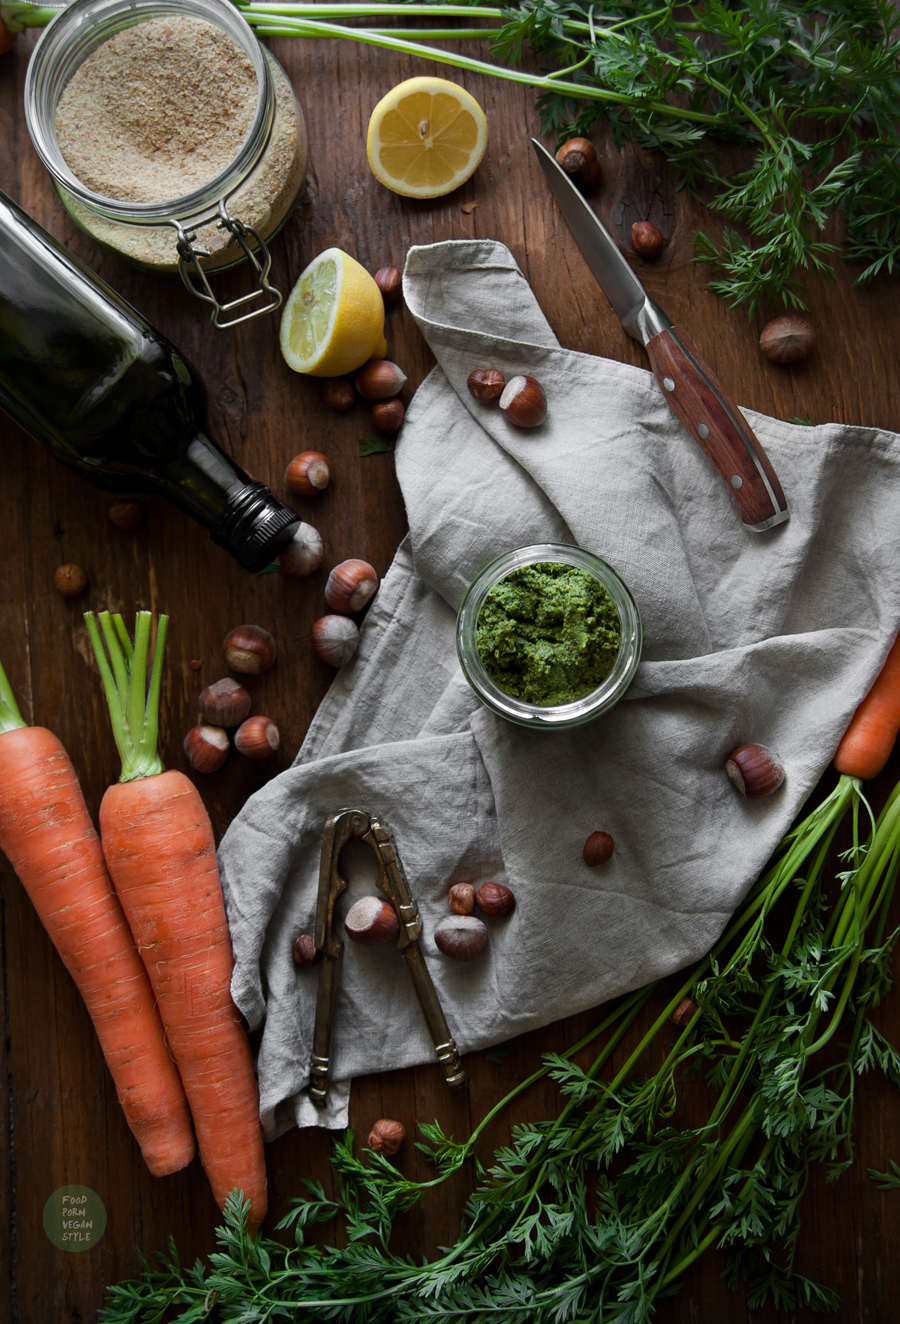 Carrot greens pesto with hazelnuts